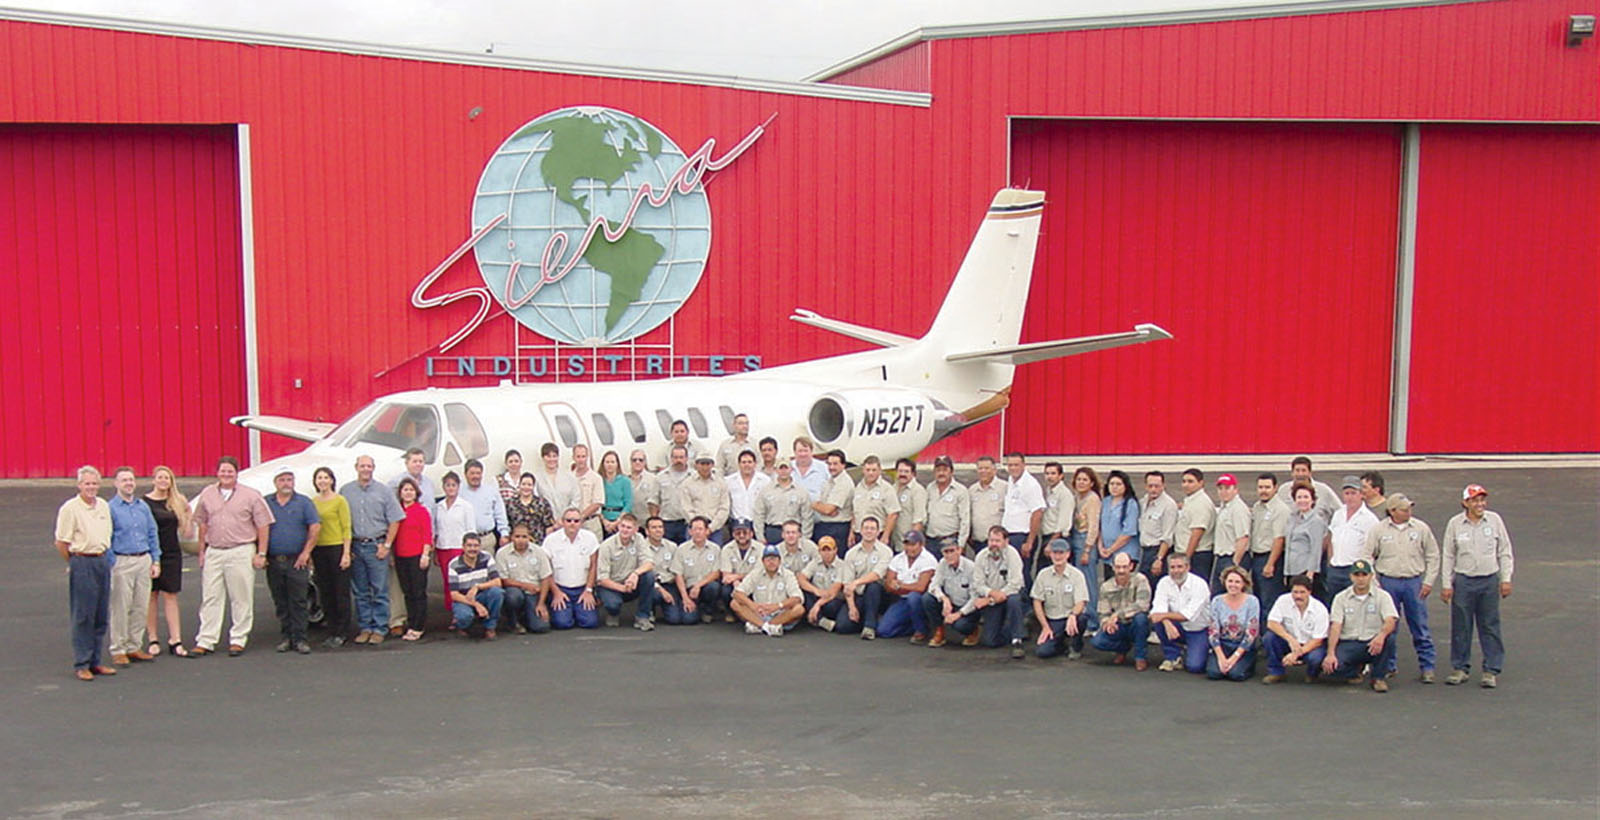 Value Light Jet Program Provides VLJ Alternative